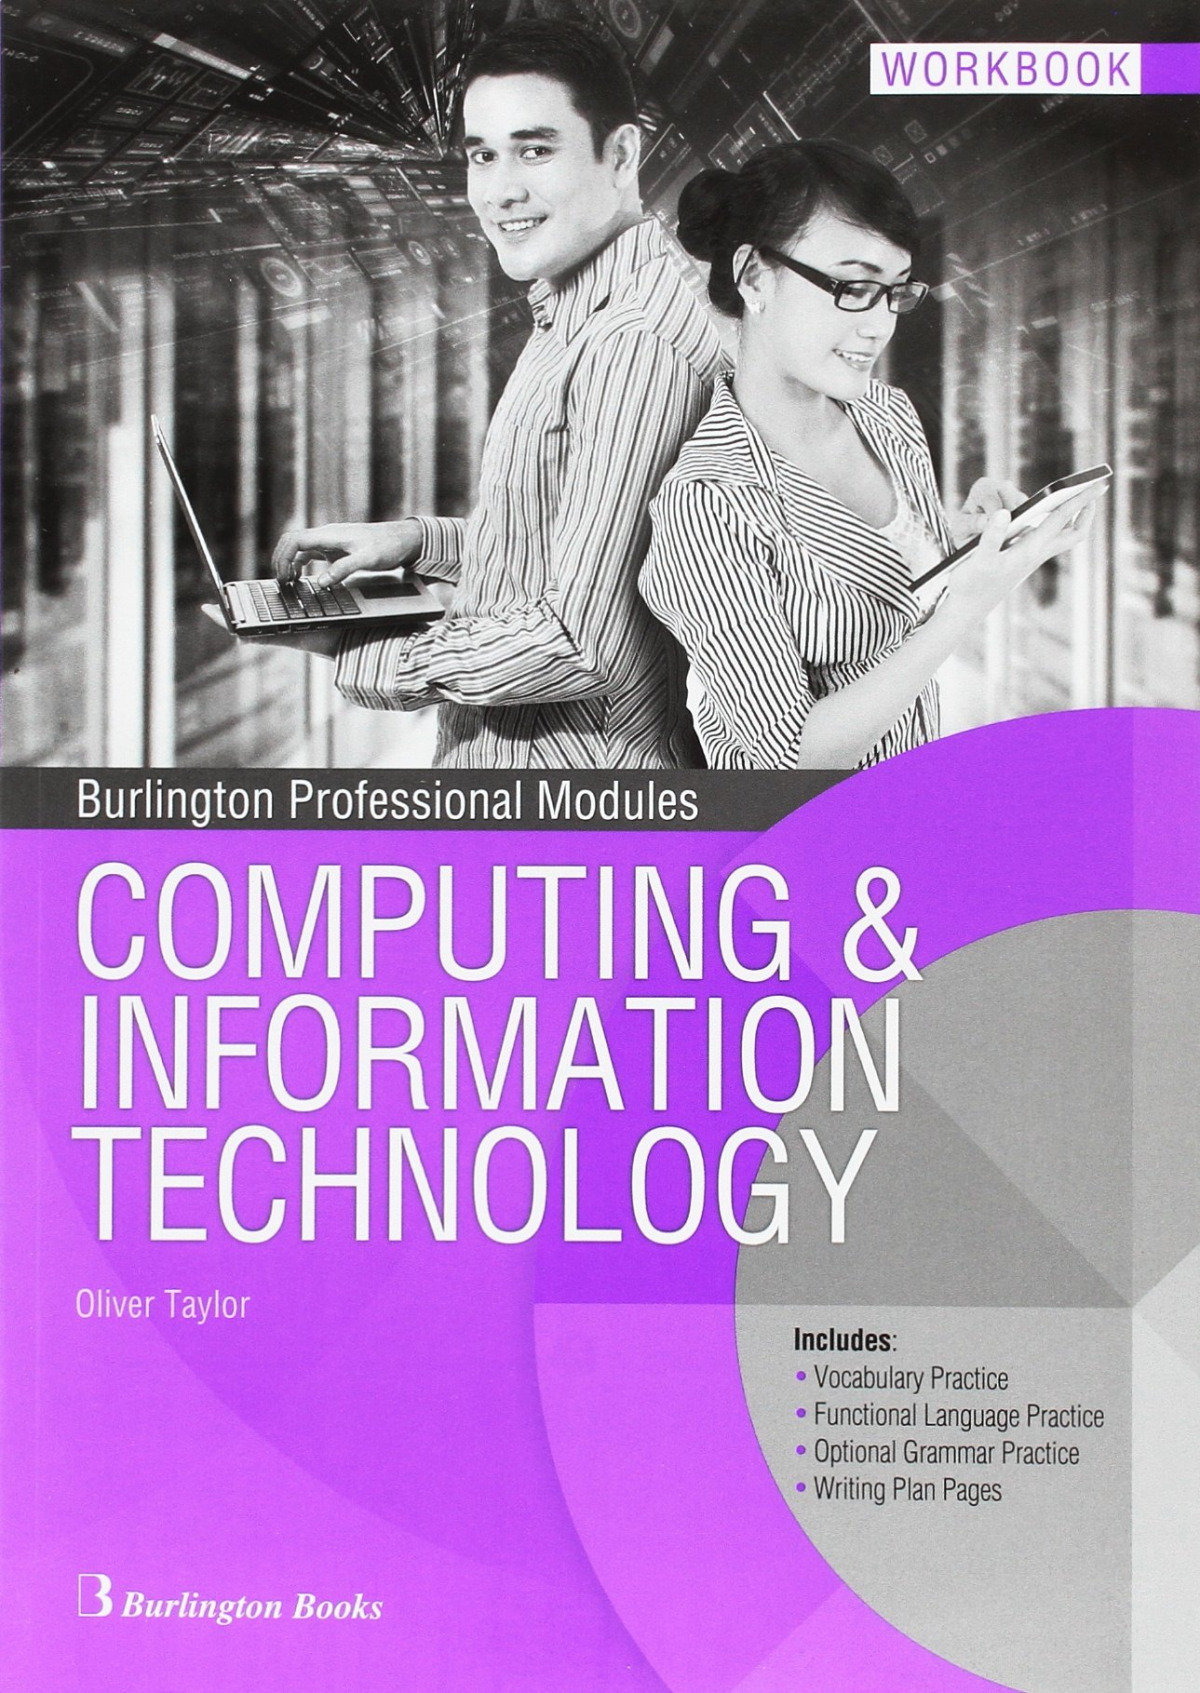 COMPUTING AND INFORMATION TECHNOLOGY WORKBOOK 9789963273843